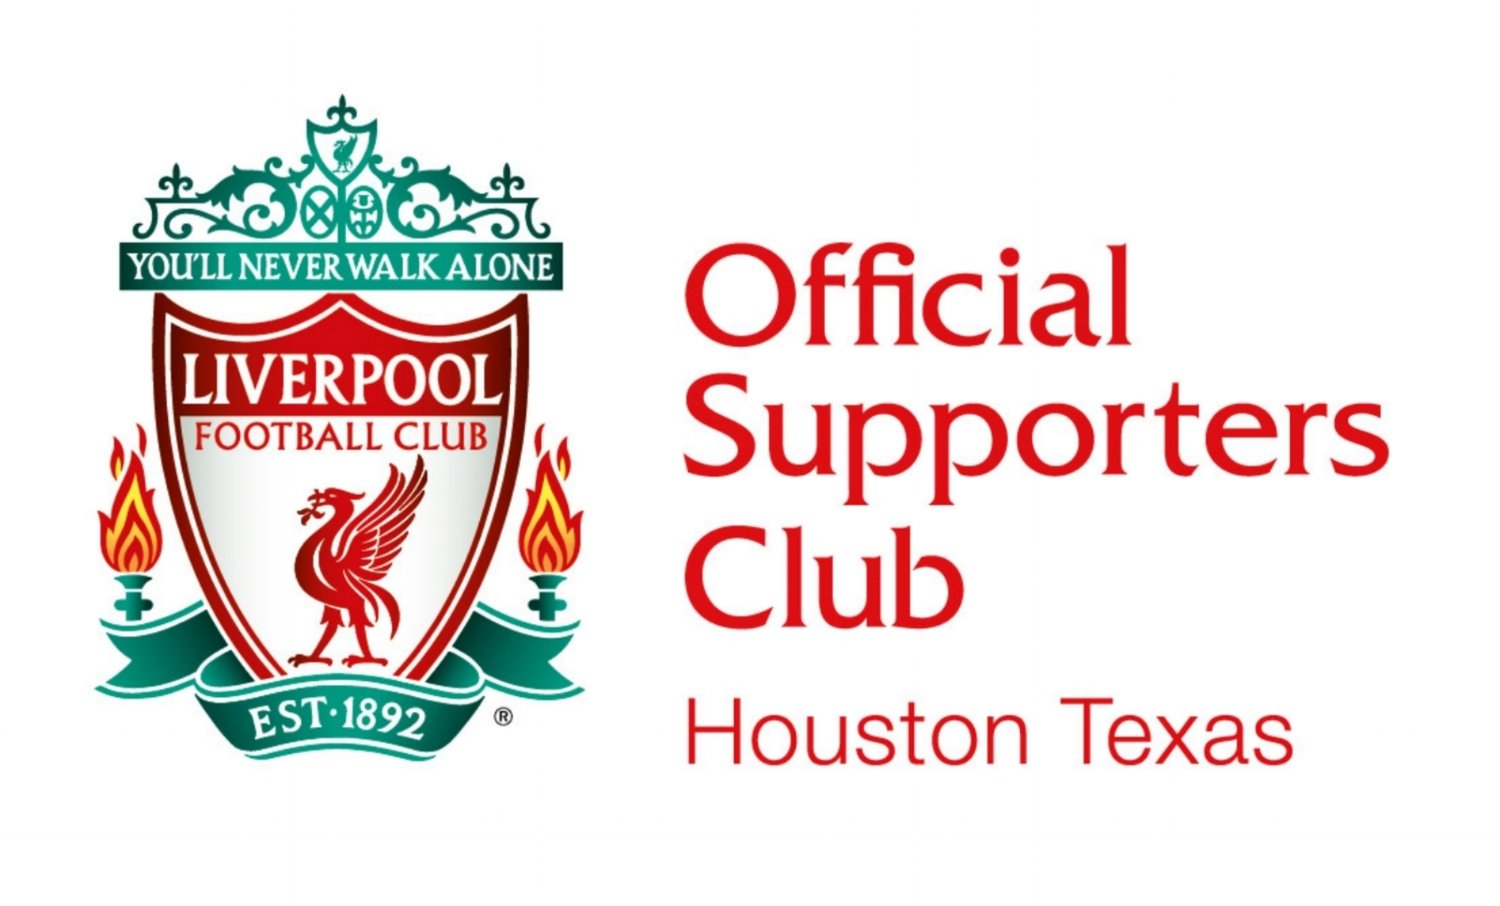 LFC Official Supporters Club of Houston